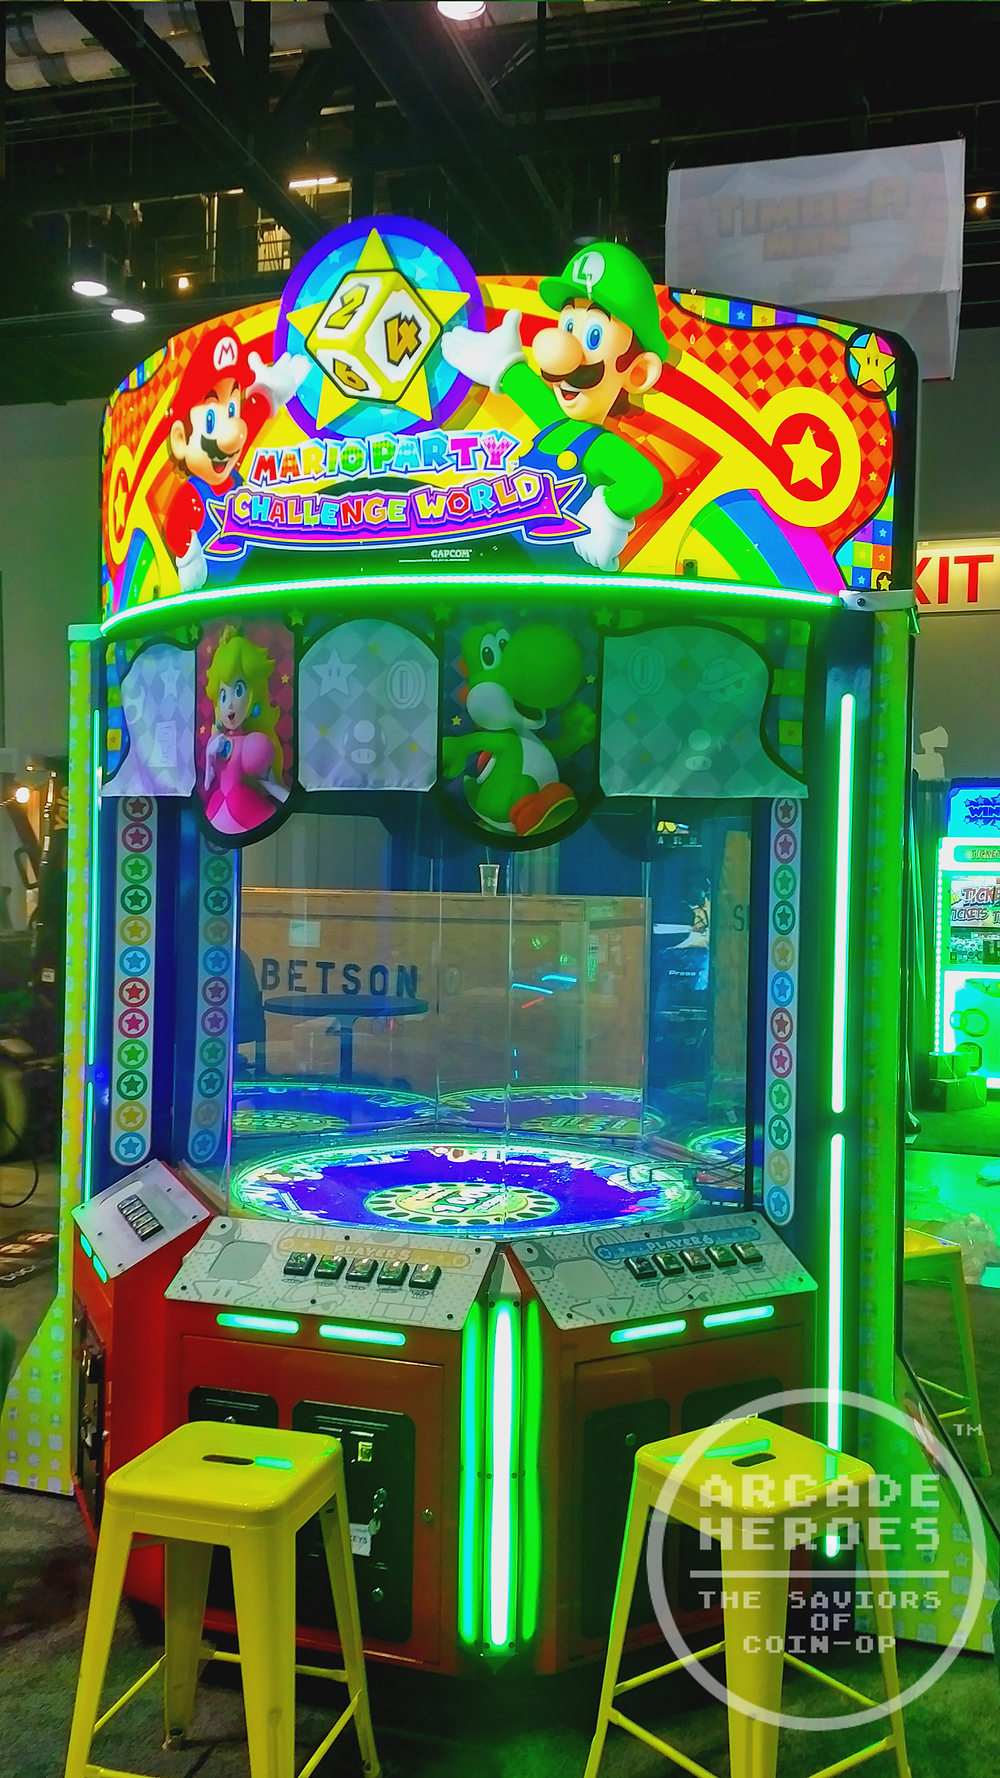 I stole this image from Arcade Heroes because I'm not cool enough to go to IAAPA.